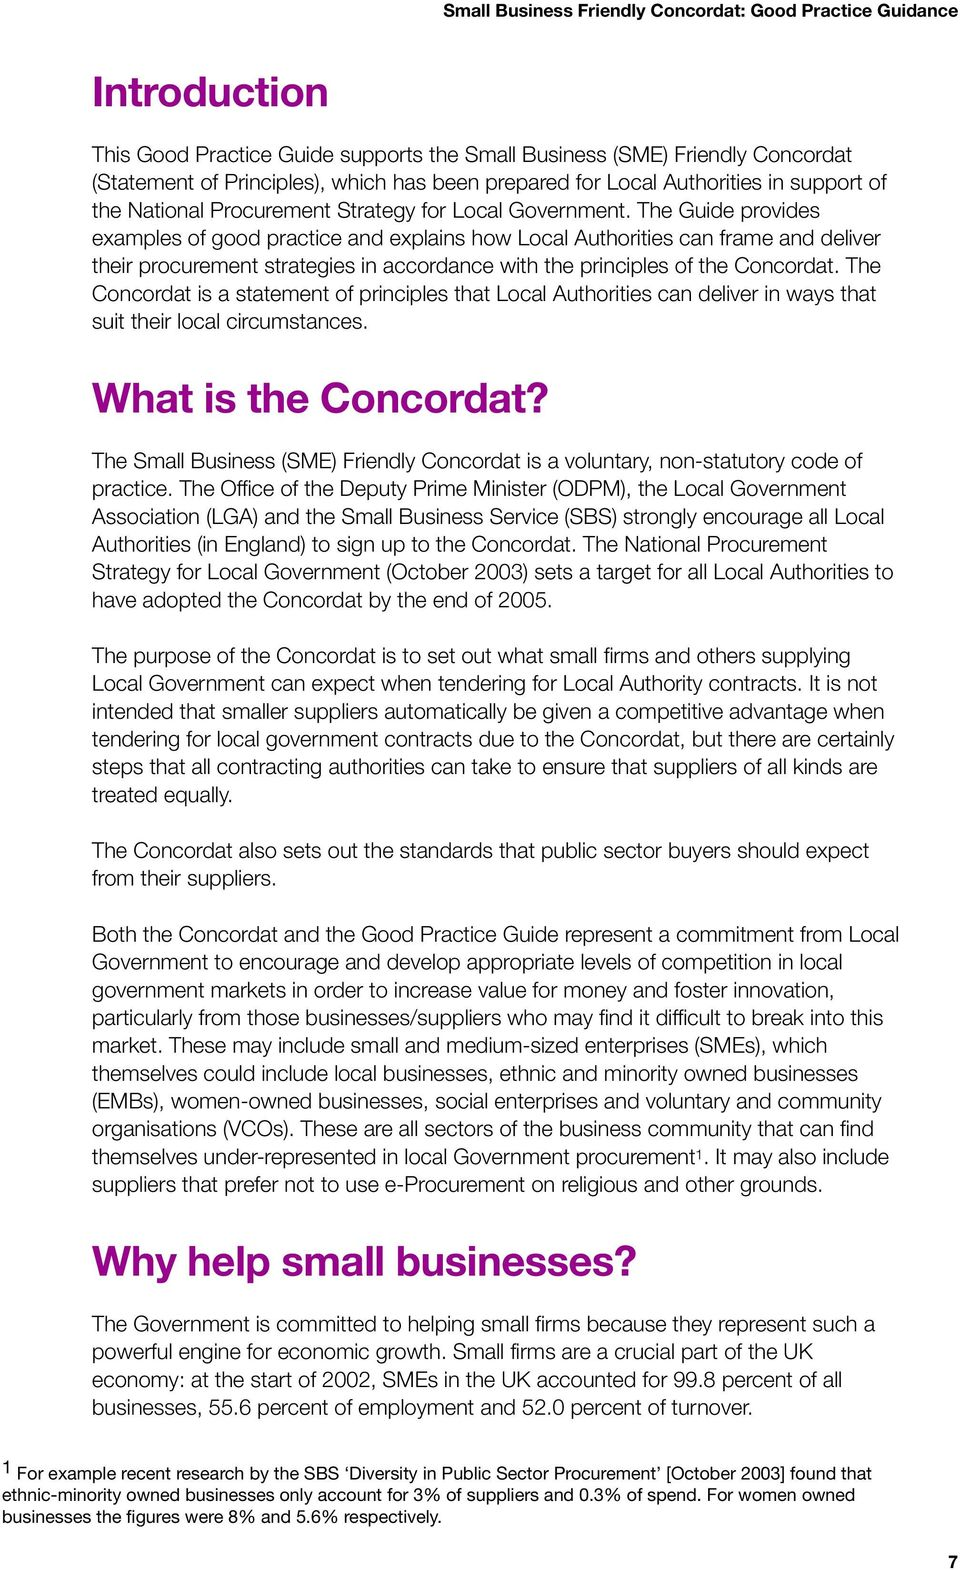 The Guide provides examples of good practice and explains how Local Authorities can frame and deliver their procurement strategies in accordance with the principles of the Concordat.